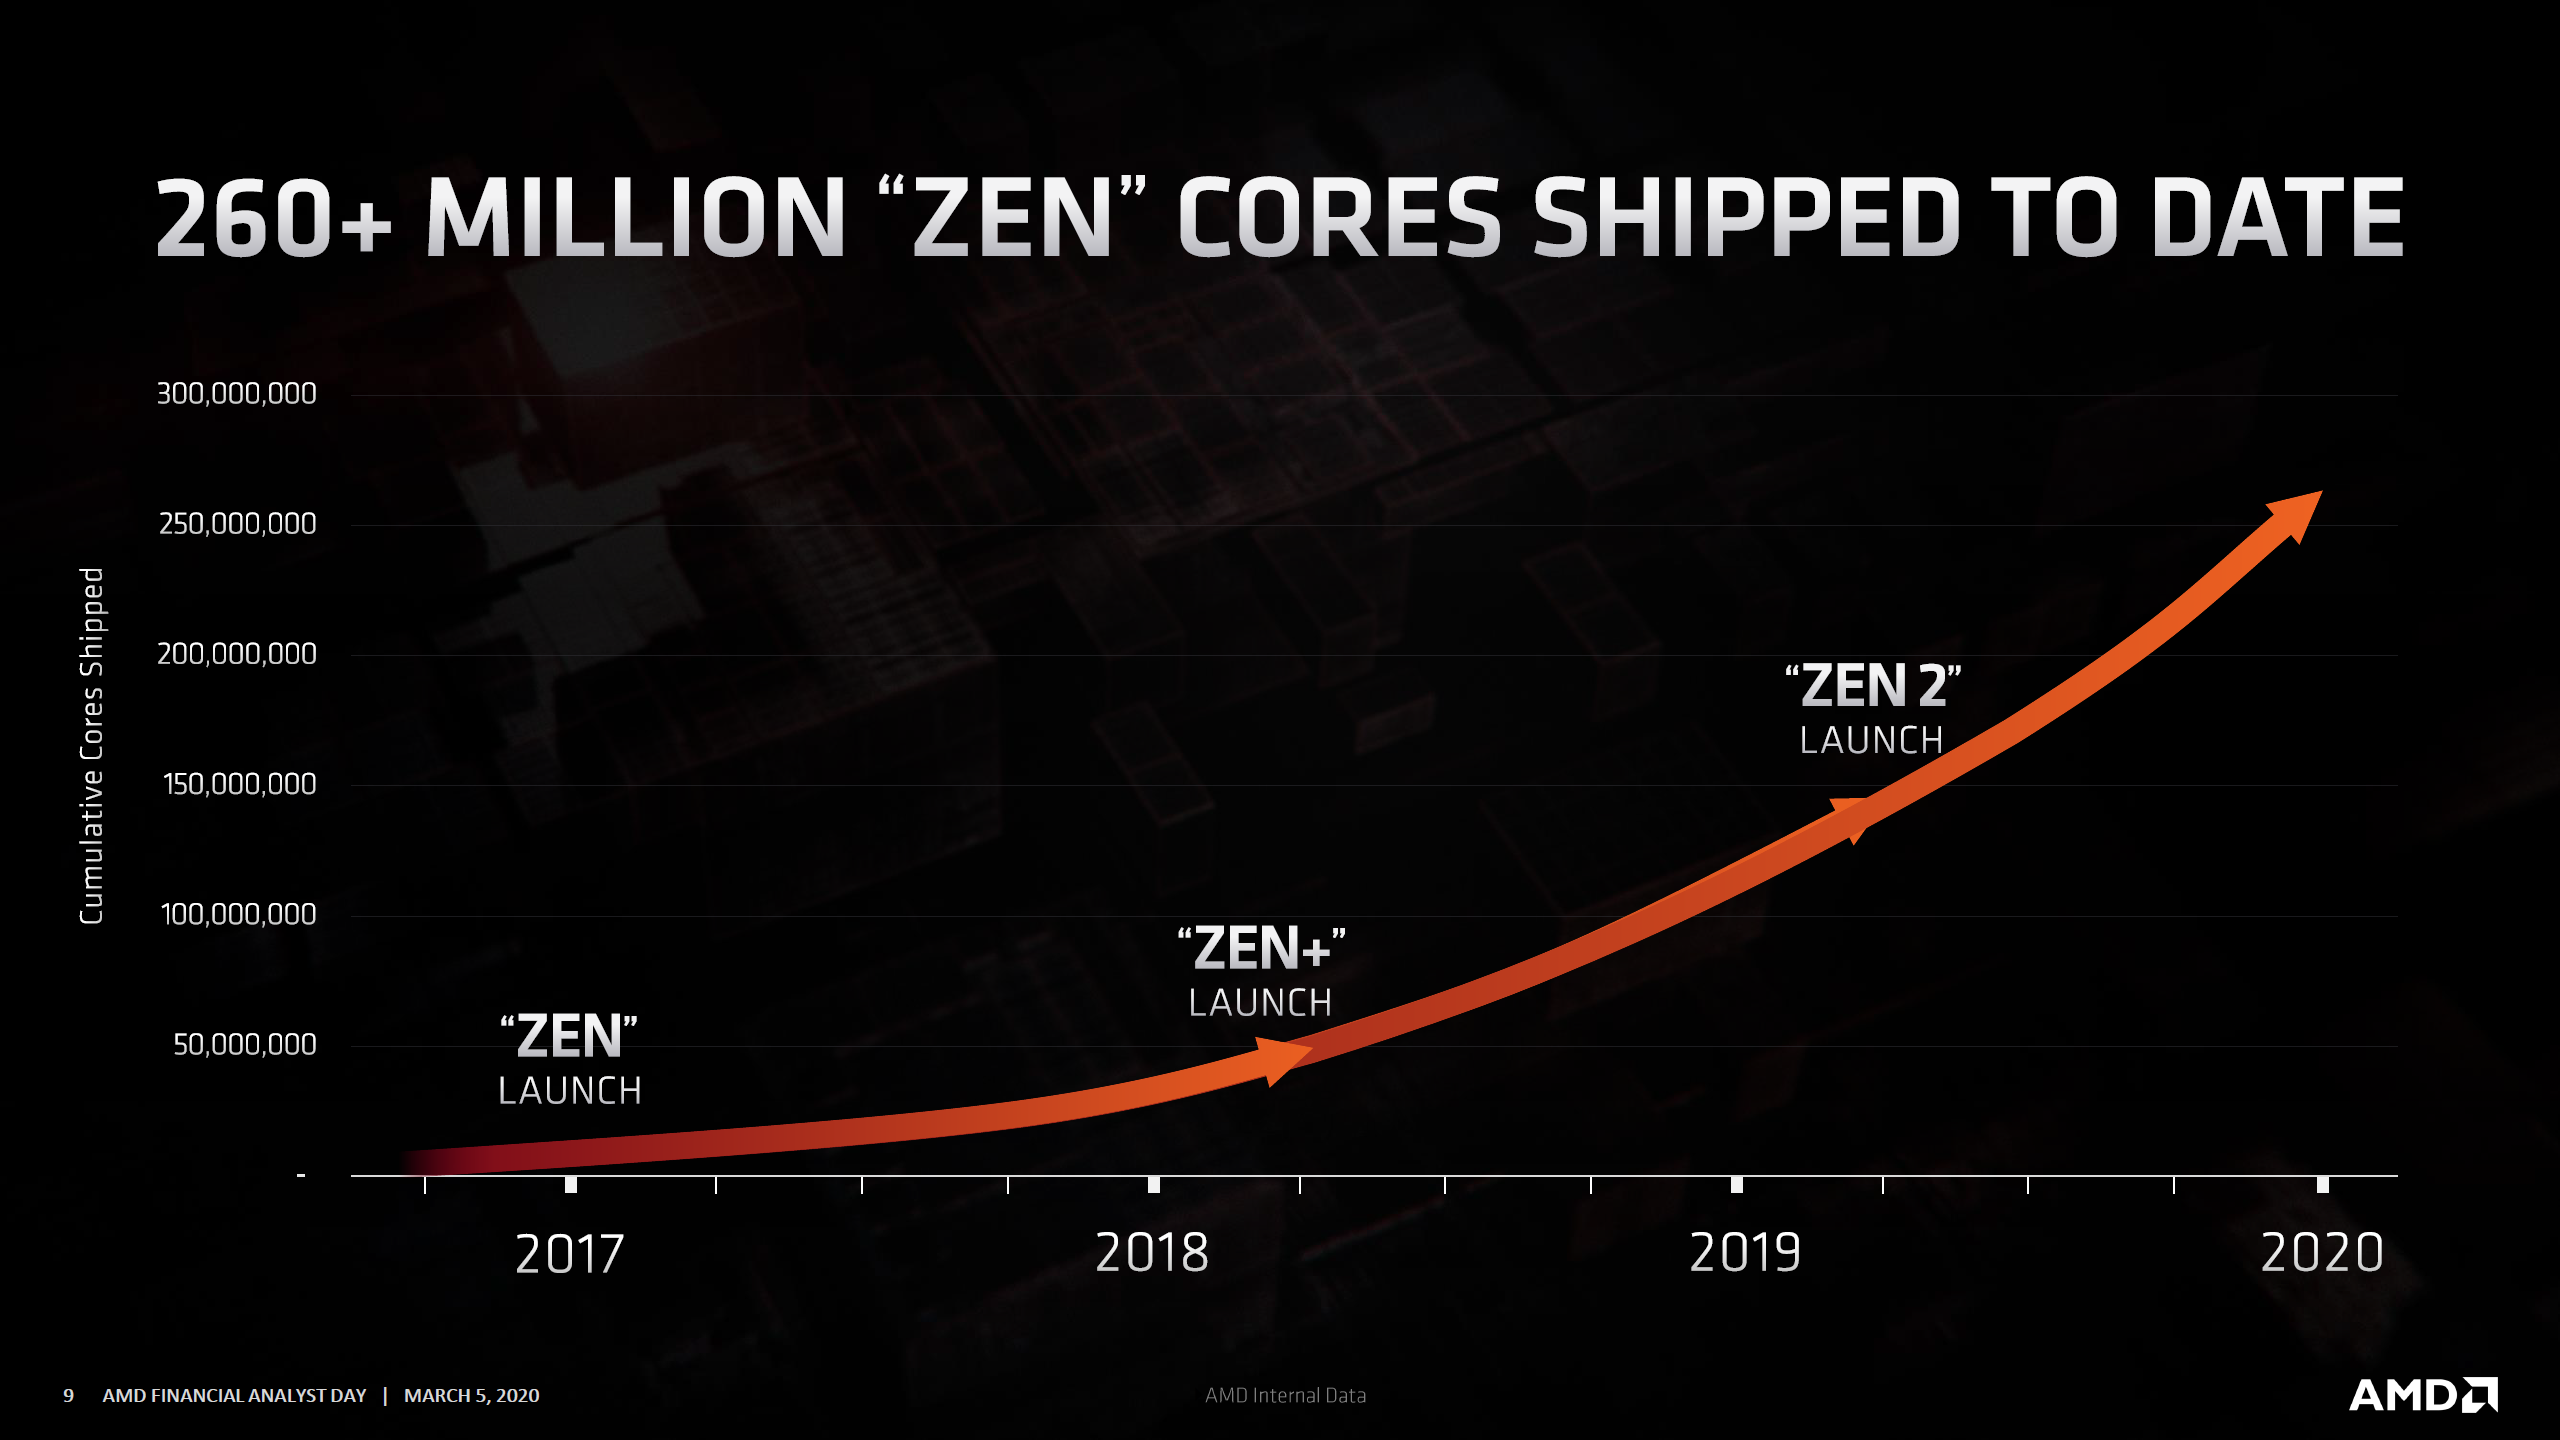 Amd Zen 3 Based Ryzen 4000 Epyc Milan Cpus Arrive In Late 2020